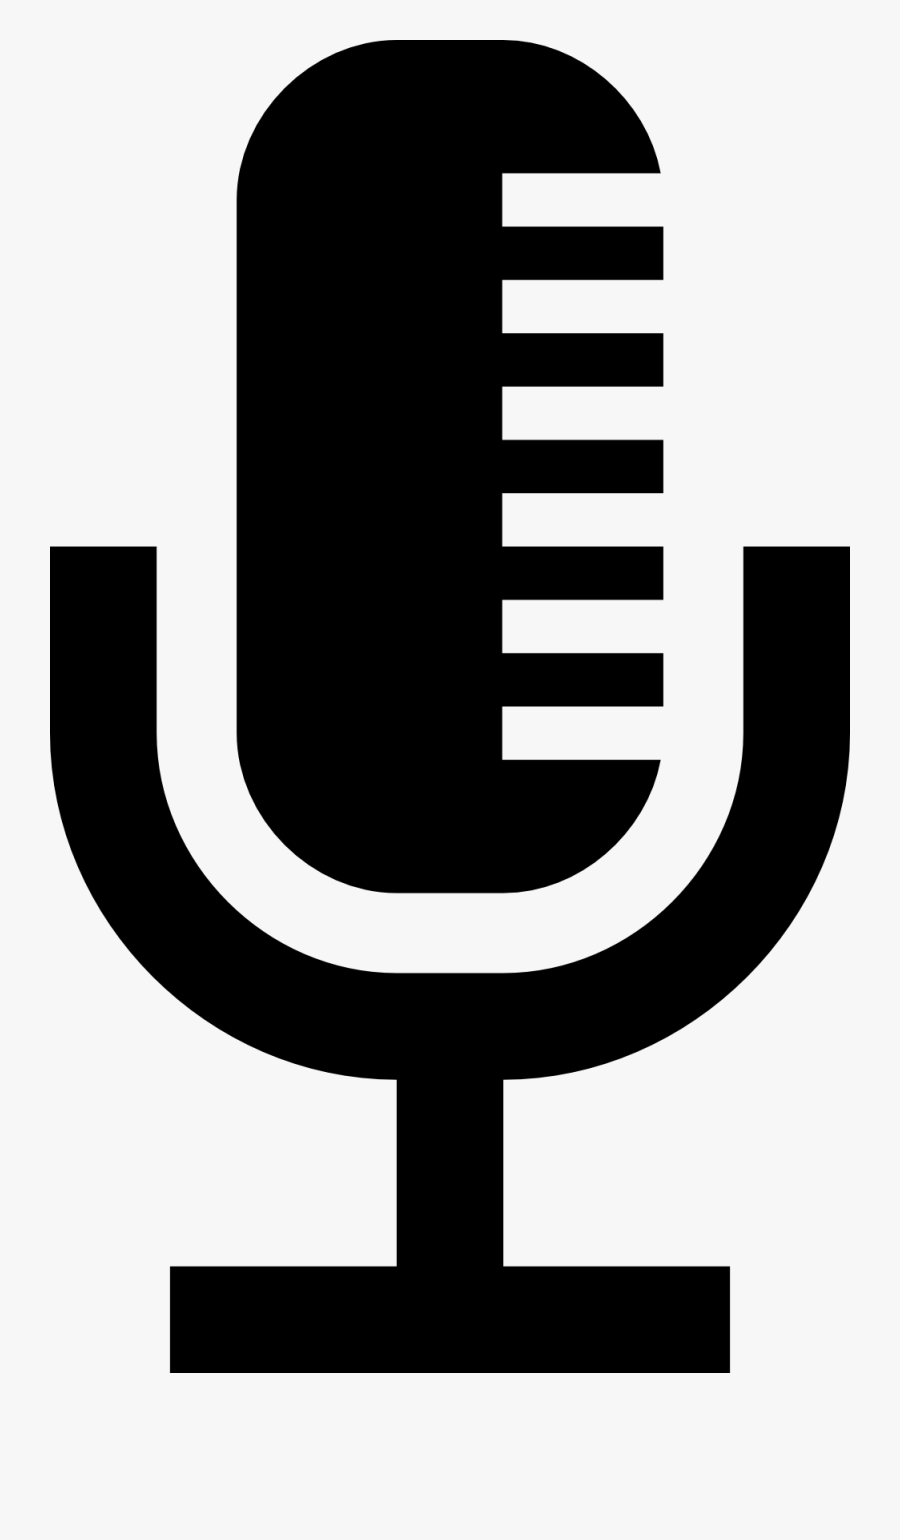 This Is The Icon - Radio Microphone Clip Art, Transparent Clipart